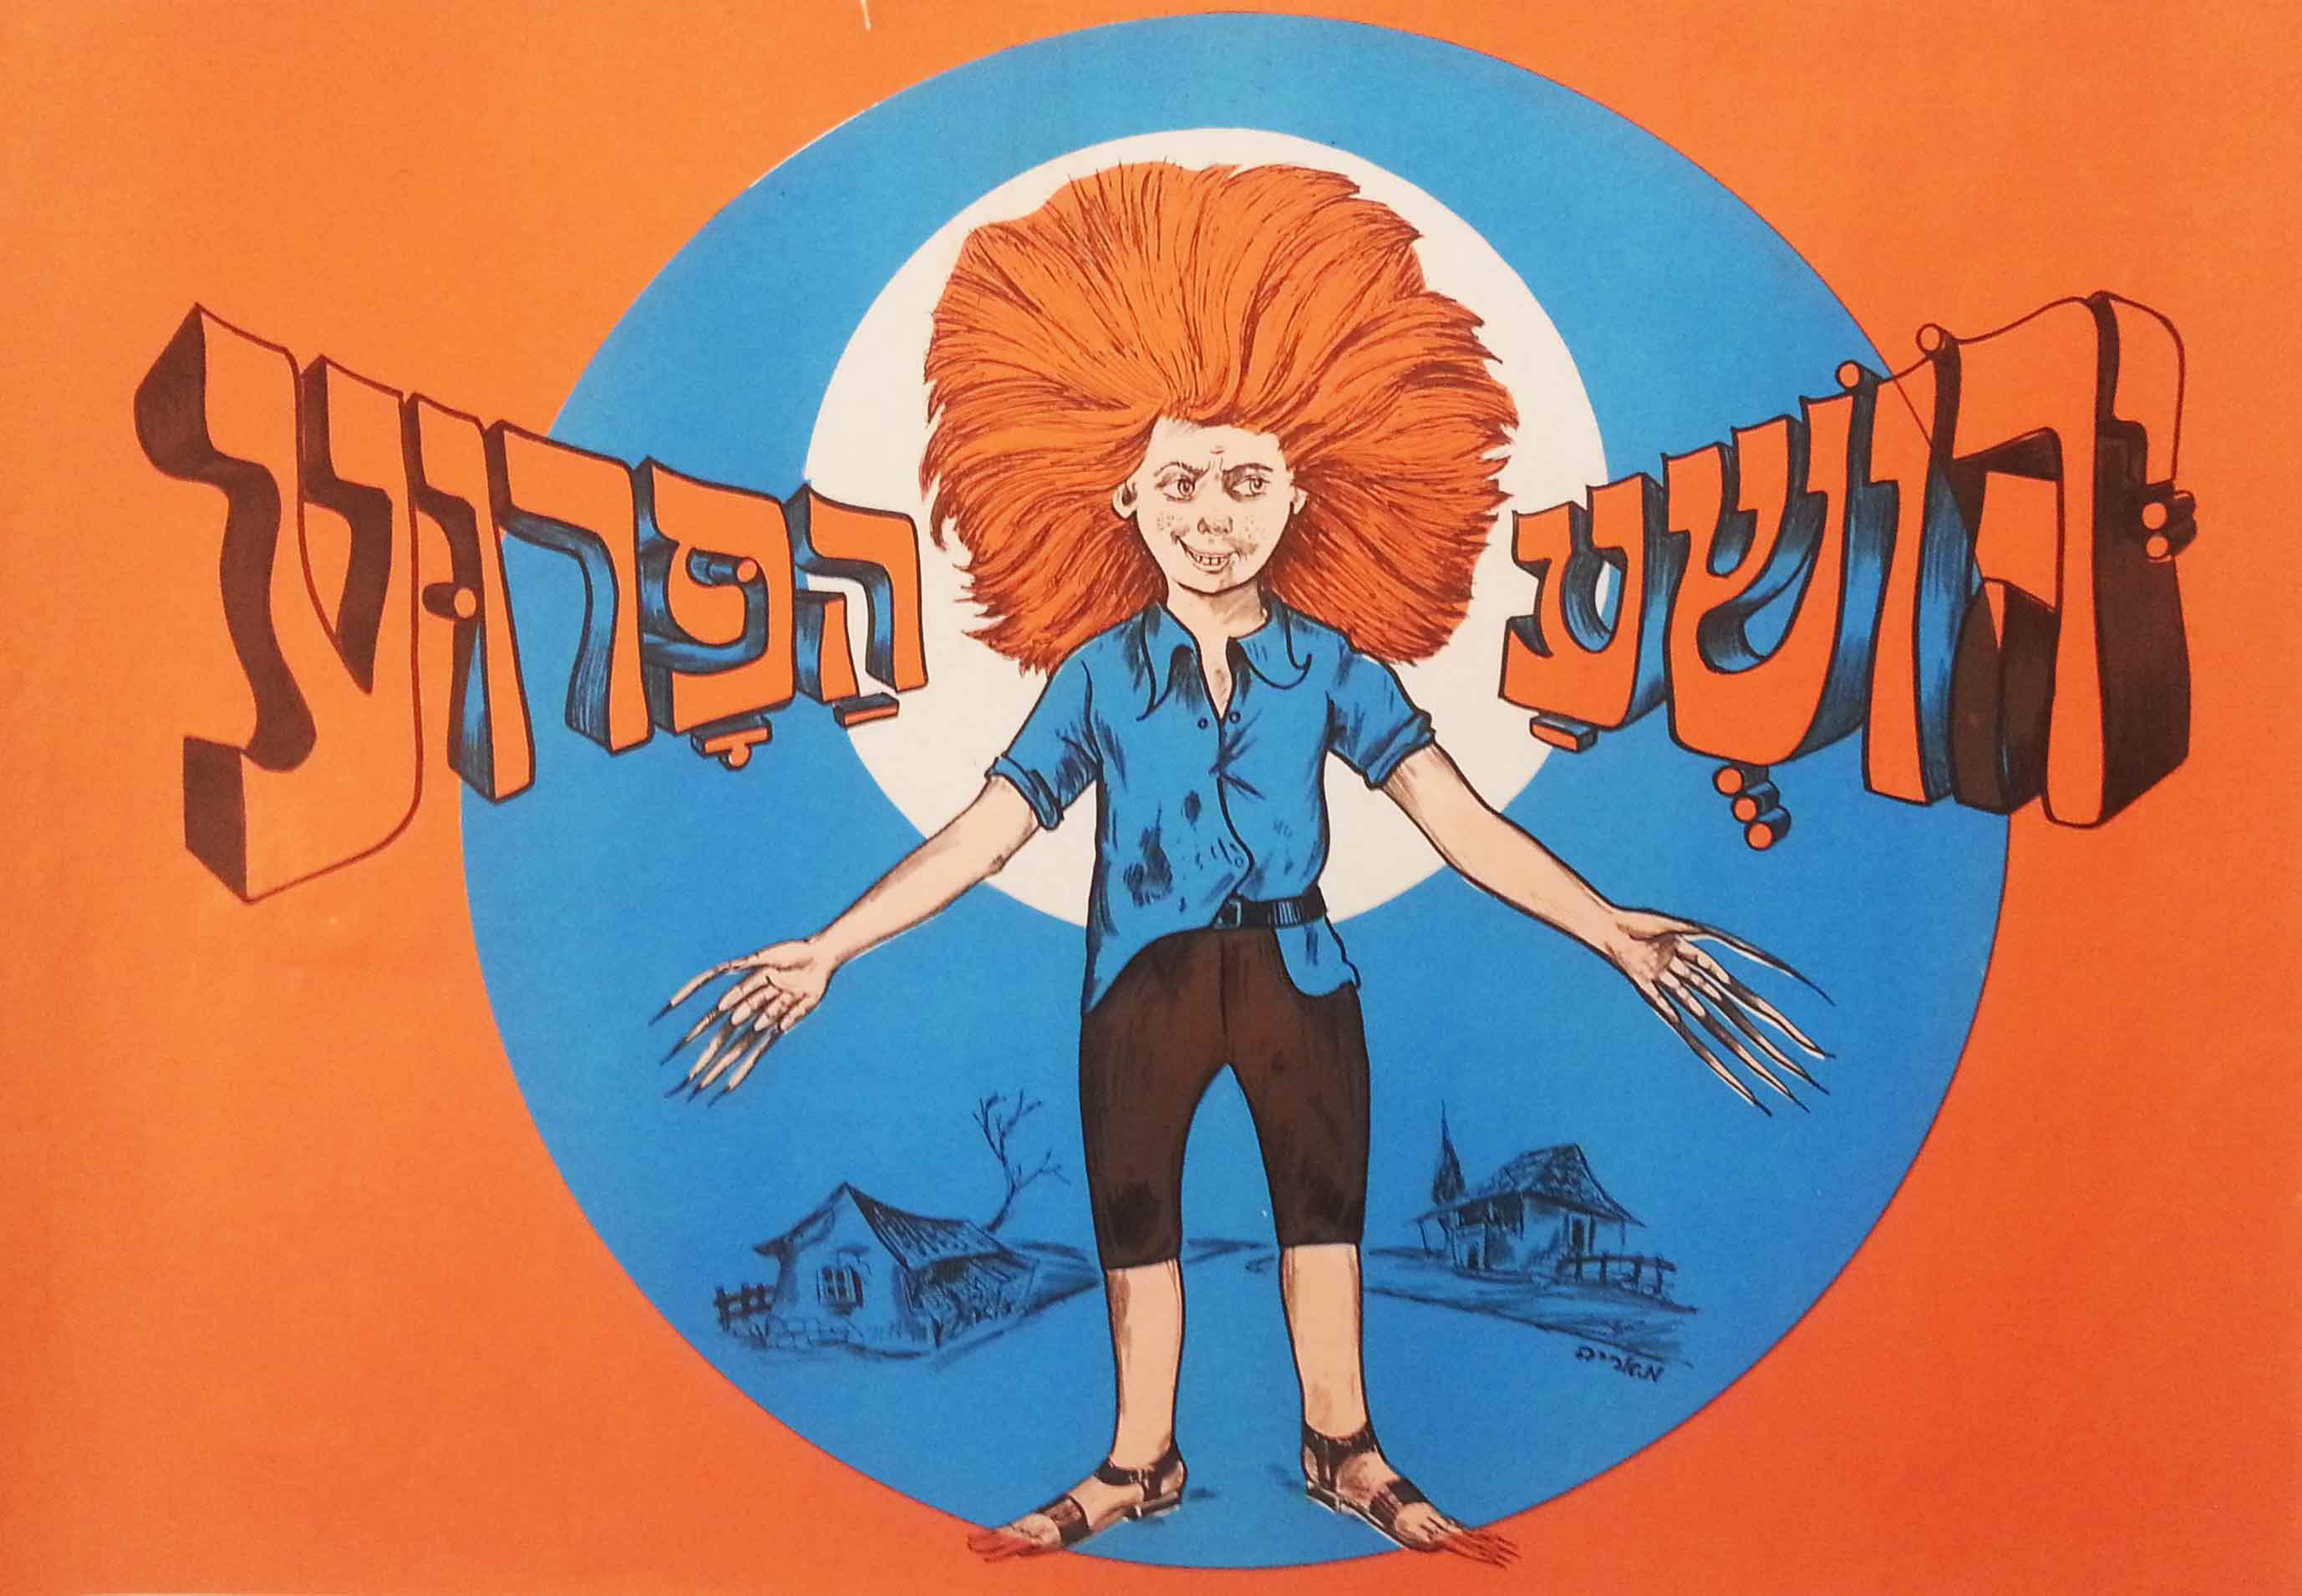 Httpwww Overlordsofchaos Comhtmlorigin Of The Word Jew Html: Yehoshuaw Parua (Struwwelpeter